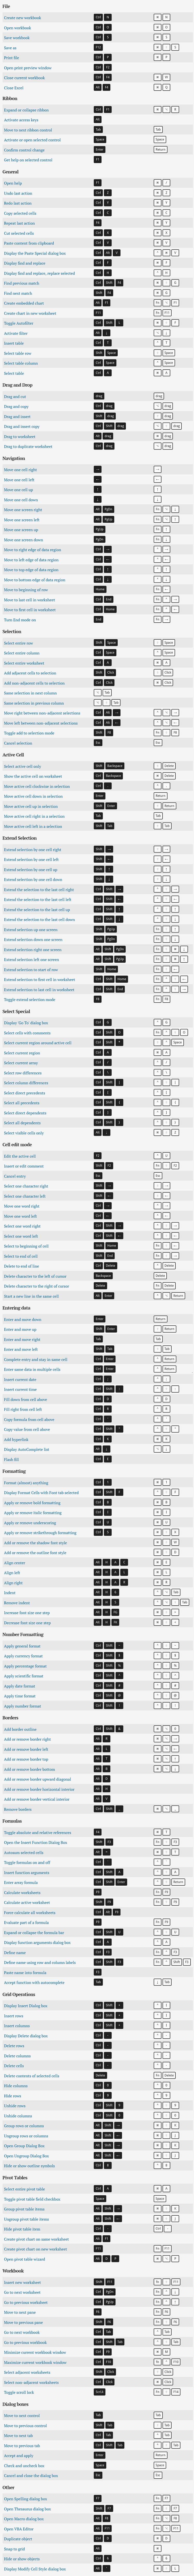 222 Excel keyboard shortcuts for PC and Mac